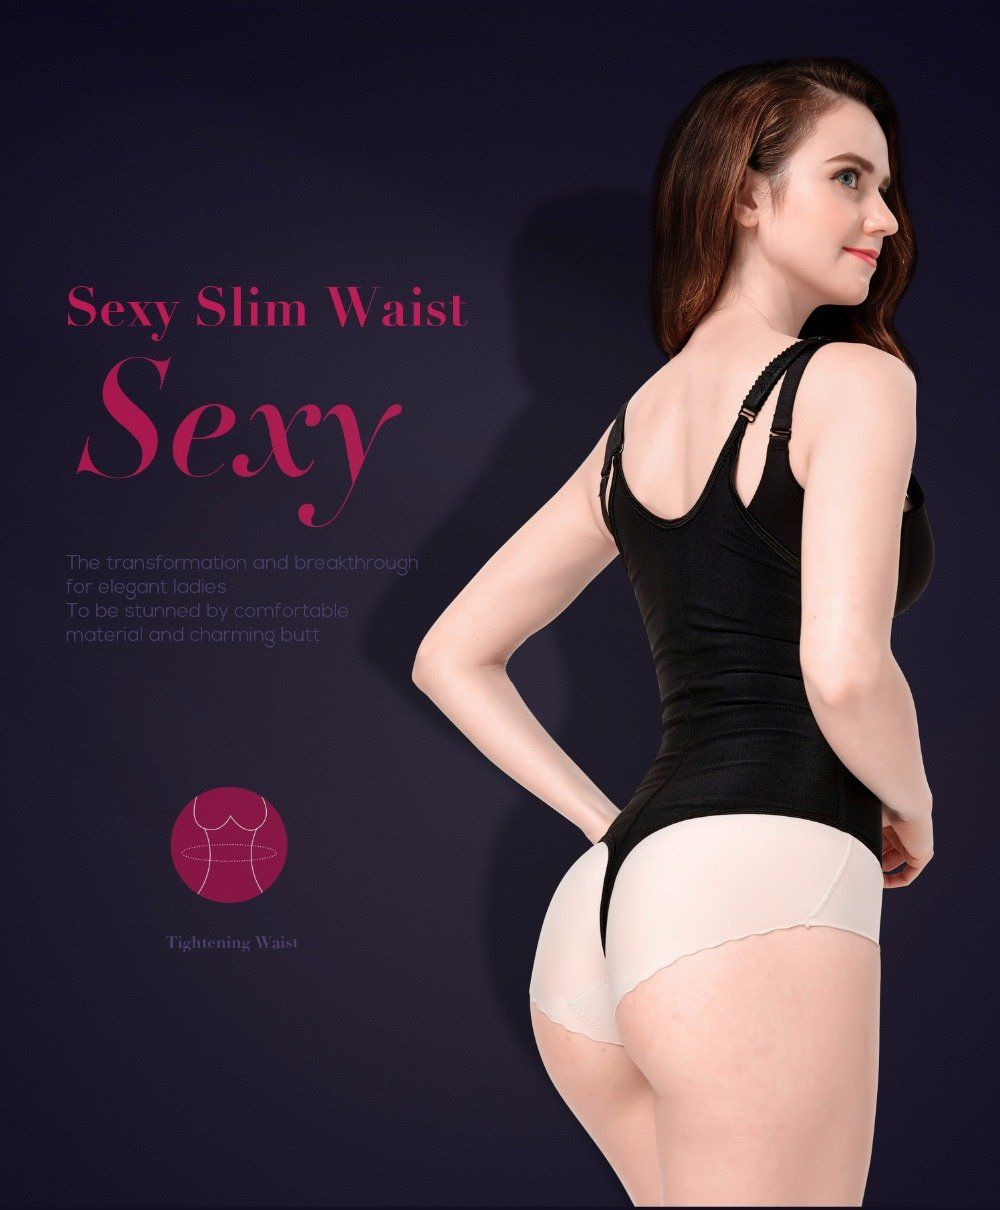 f49171fd4 Body Shaper Slimming Corset Bodysuit Shapewear Underwear Waist Modeling  Strap Women Body Shaper